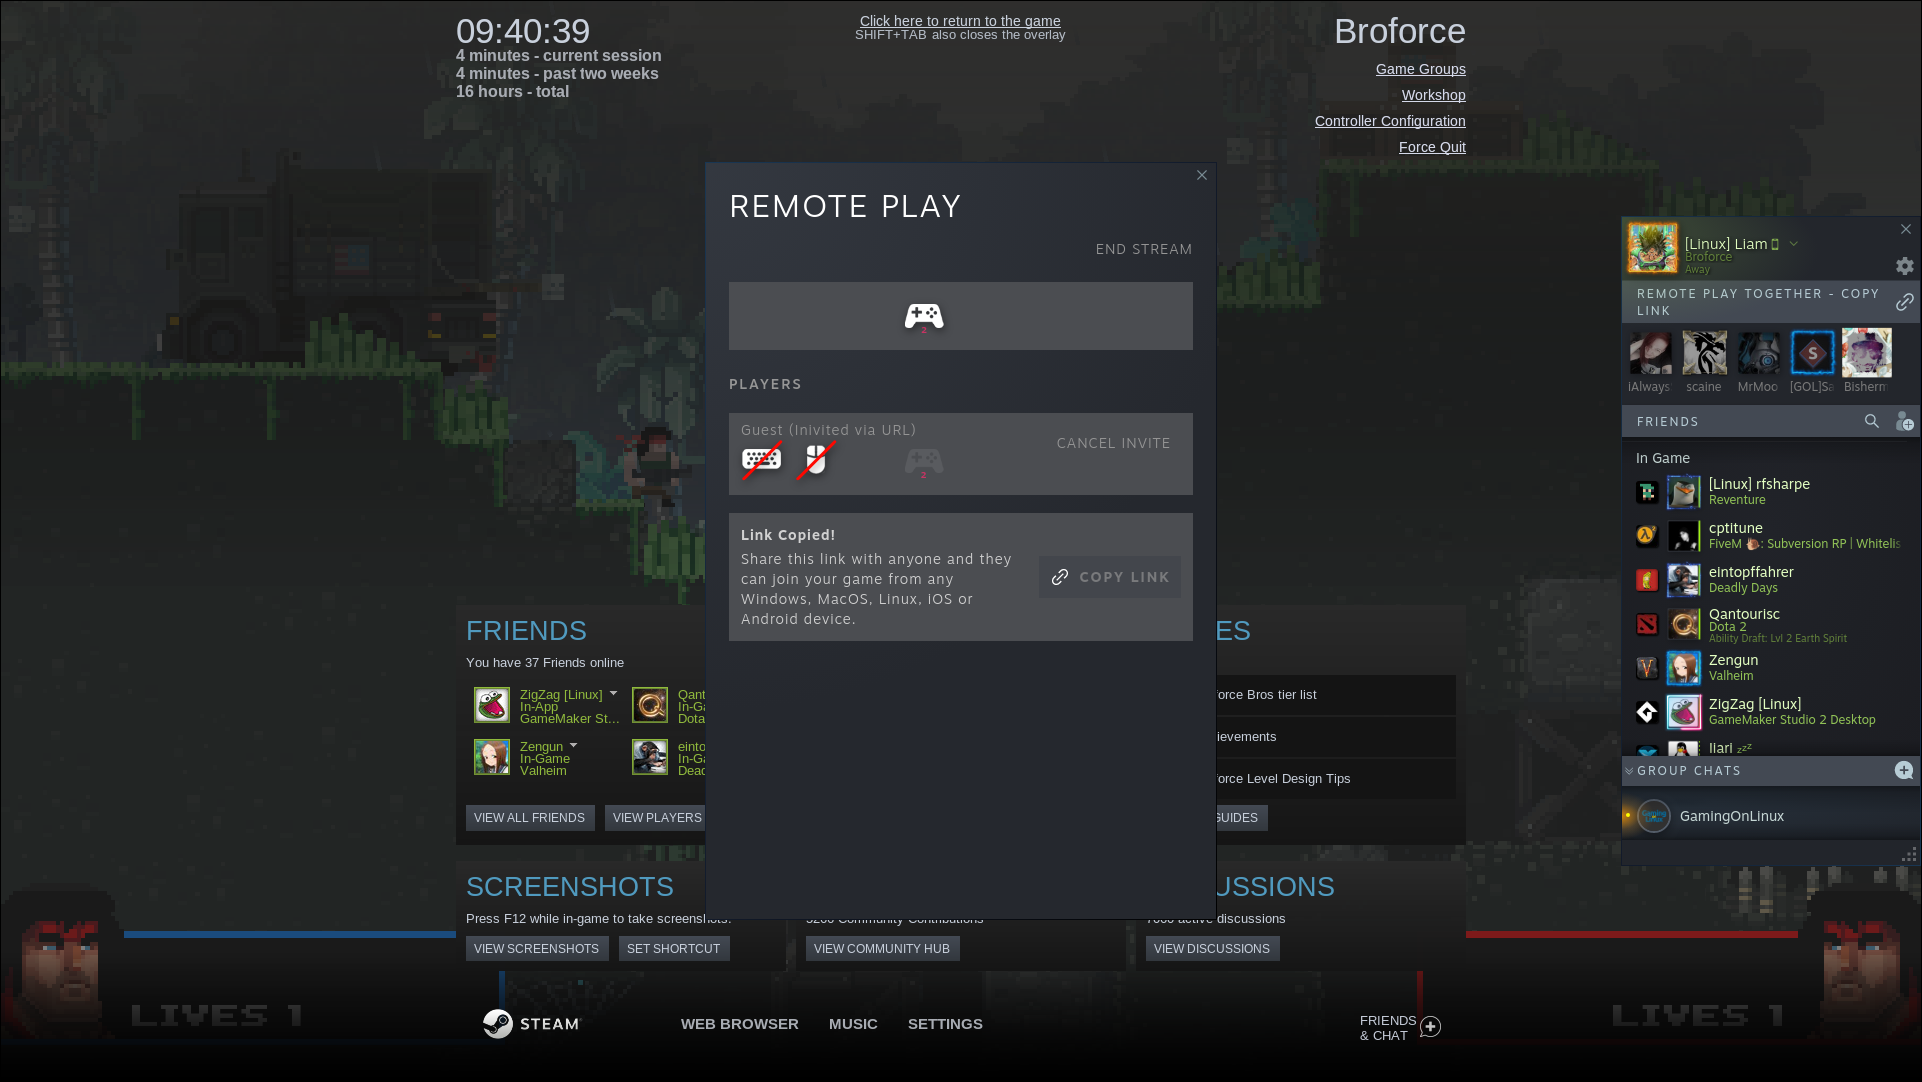 Valve launch a Beta for Remote Play Together - Invite Anyone, no Steam account needed